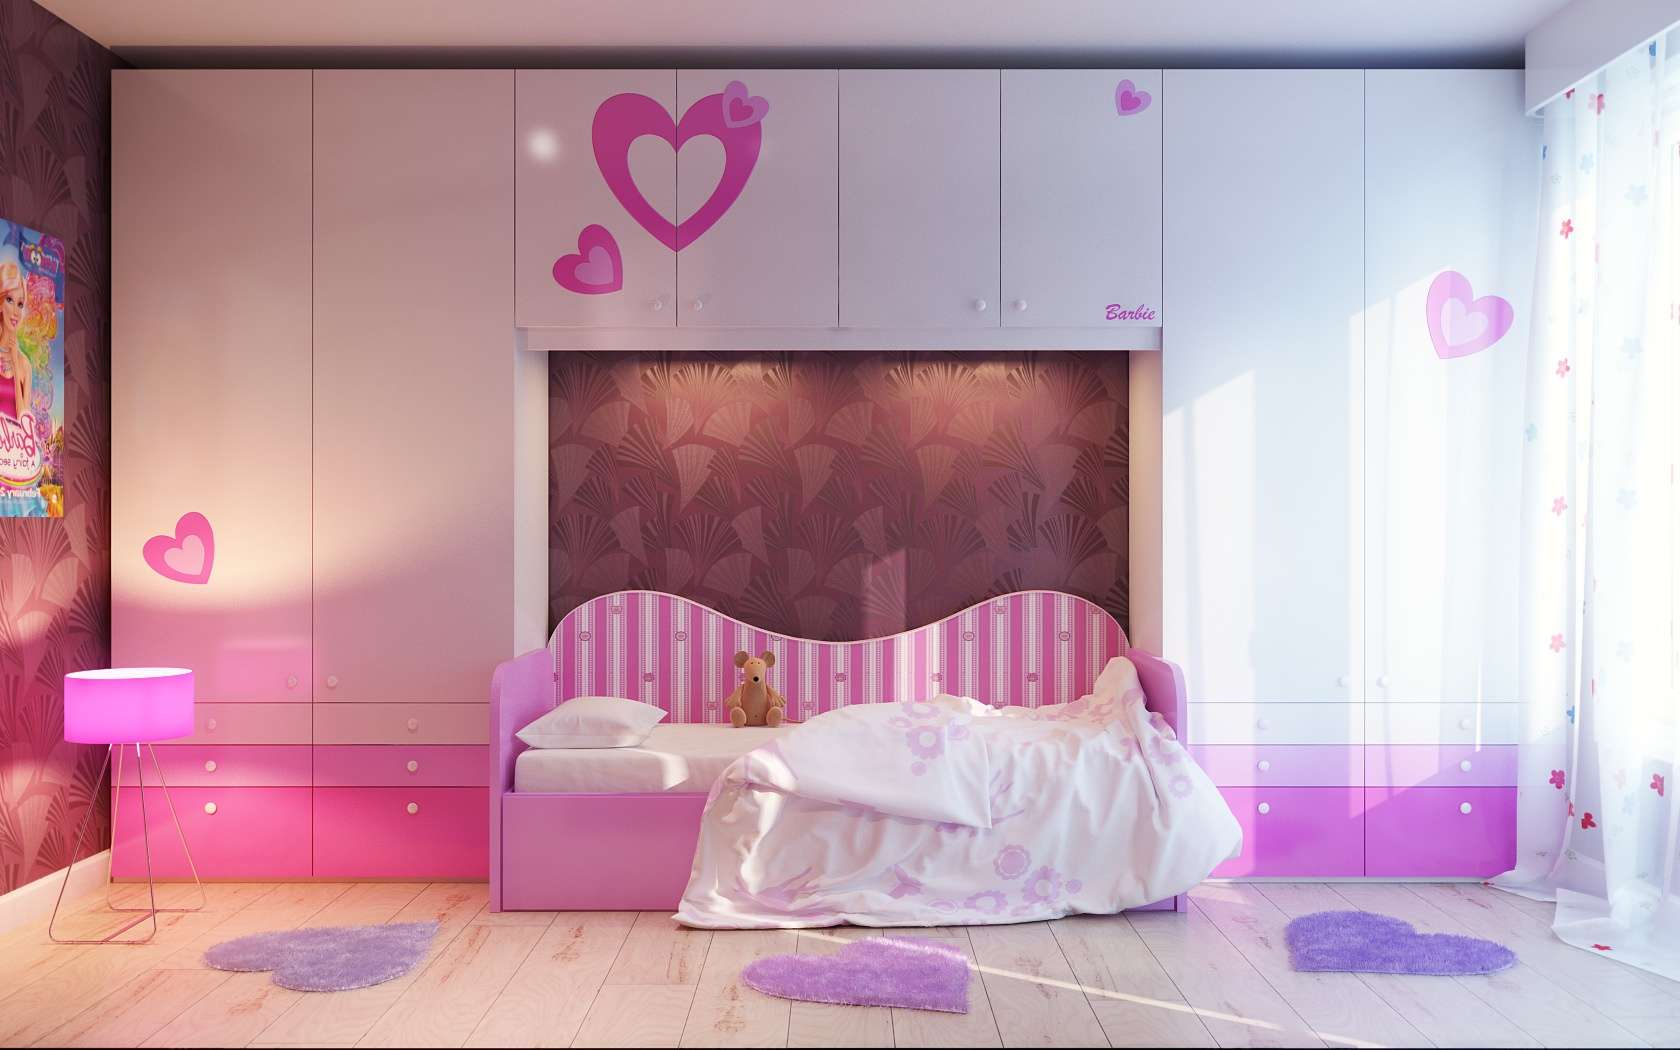 Via Vladomna Barbie Heart Themed Room Pinnacle Girlie